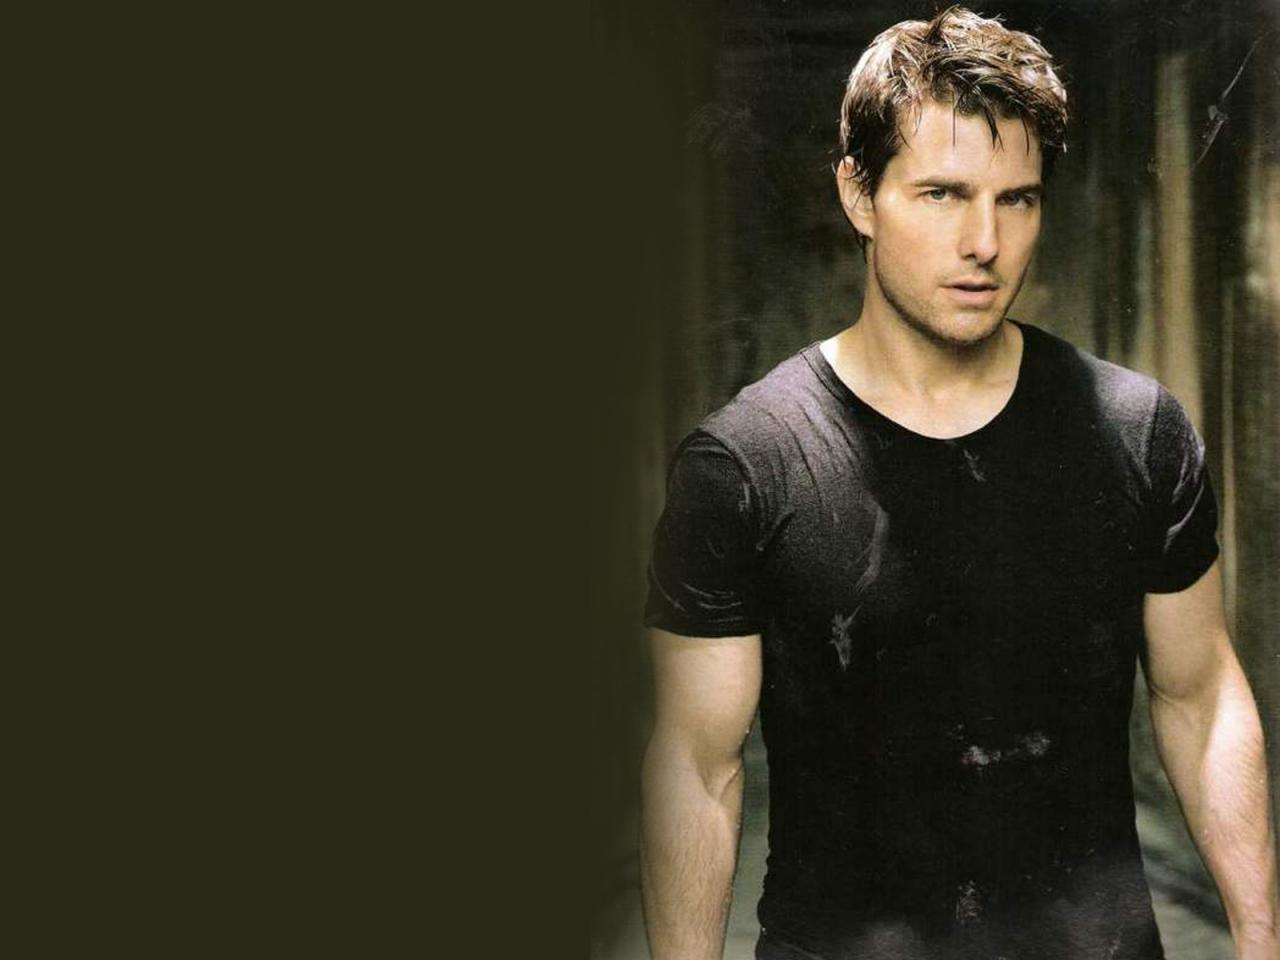 Tom Cruise Wallpapers HD WALLPAPERS 1280x960